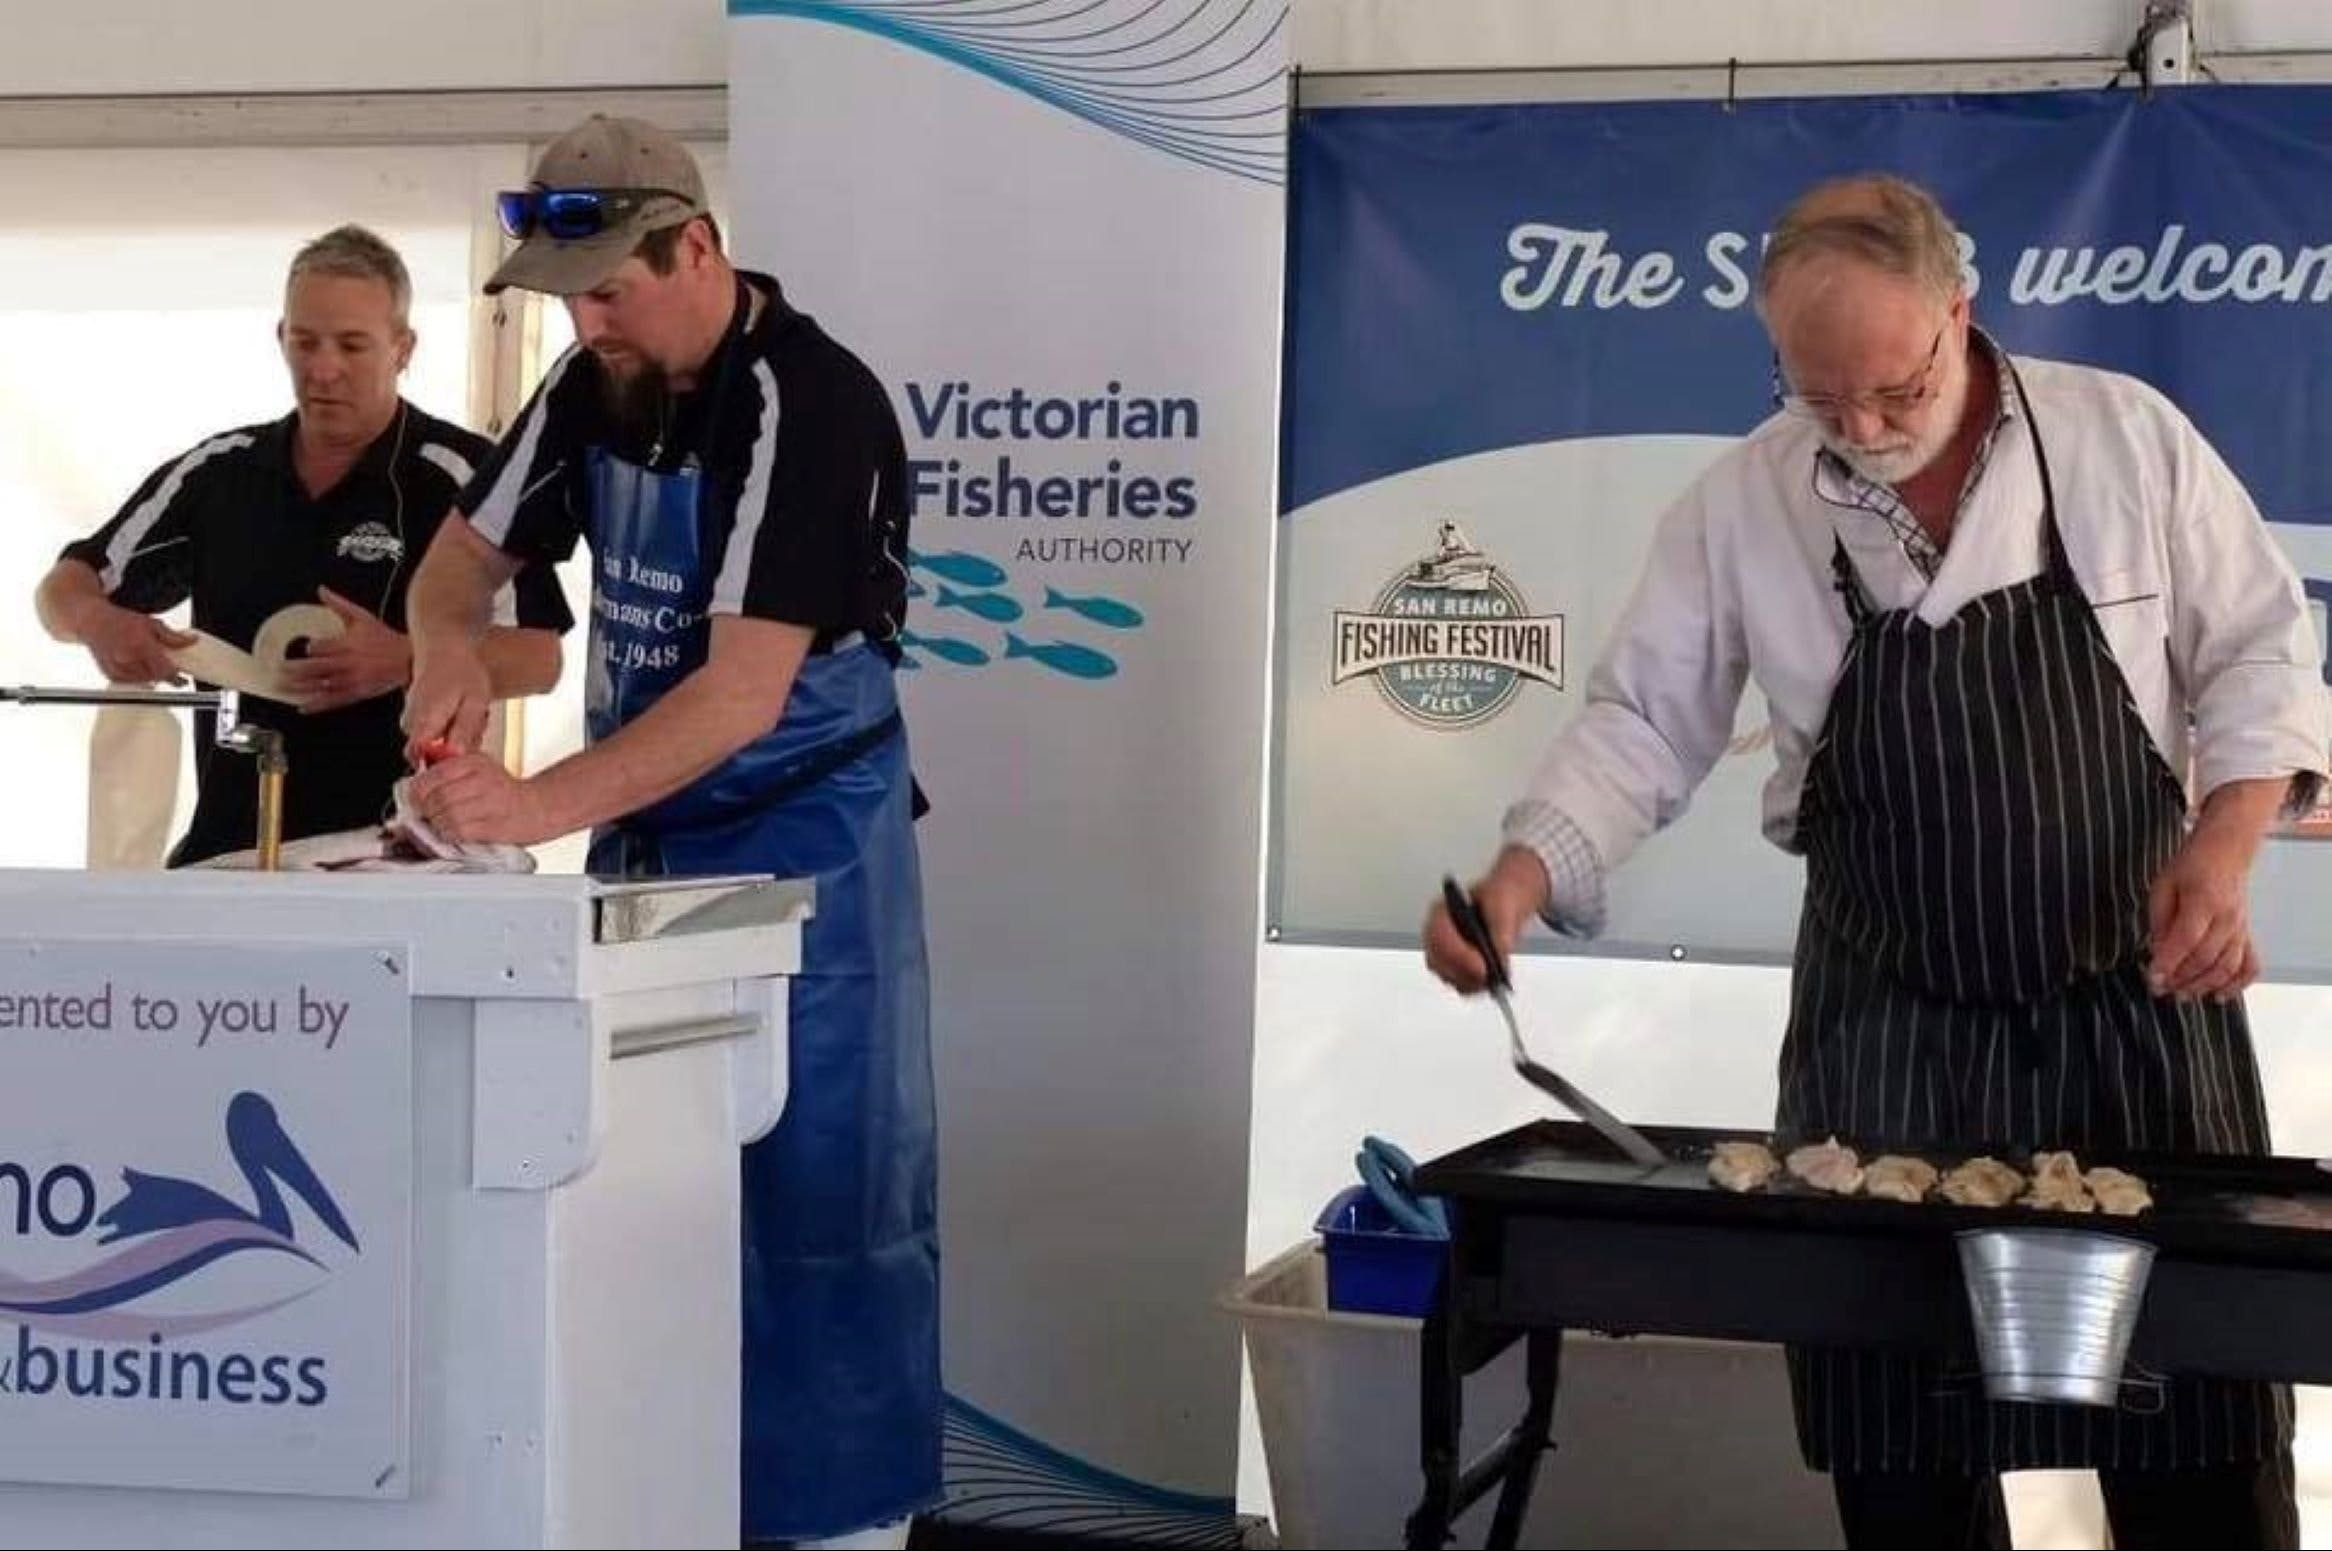 San Remo Fishing Festival - Redcliffe Tourism